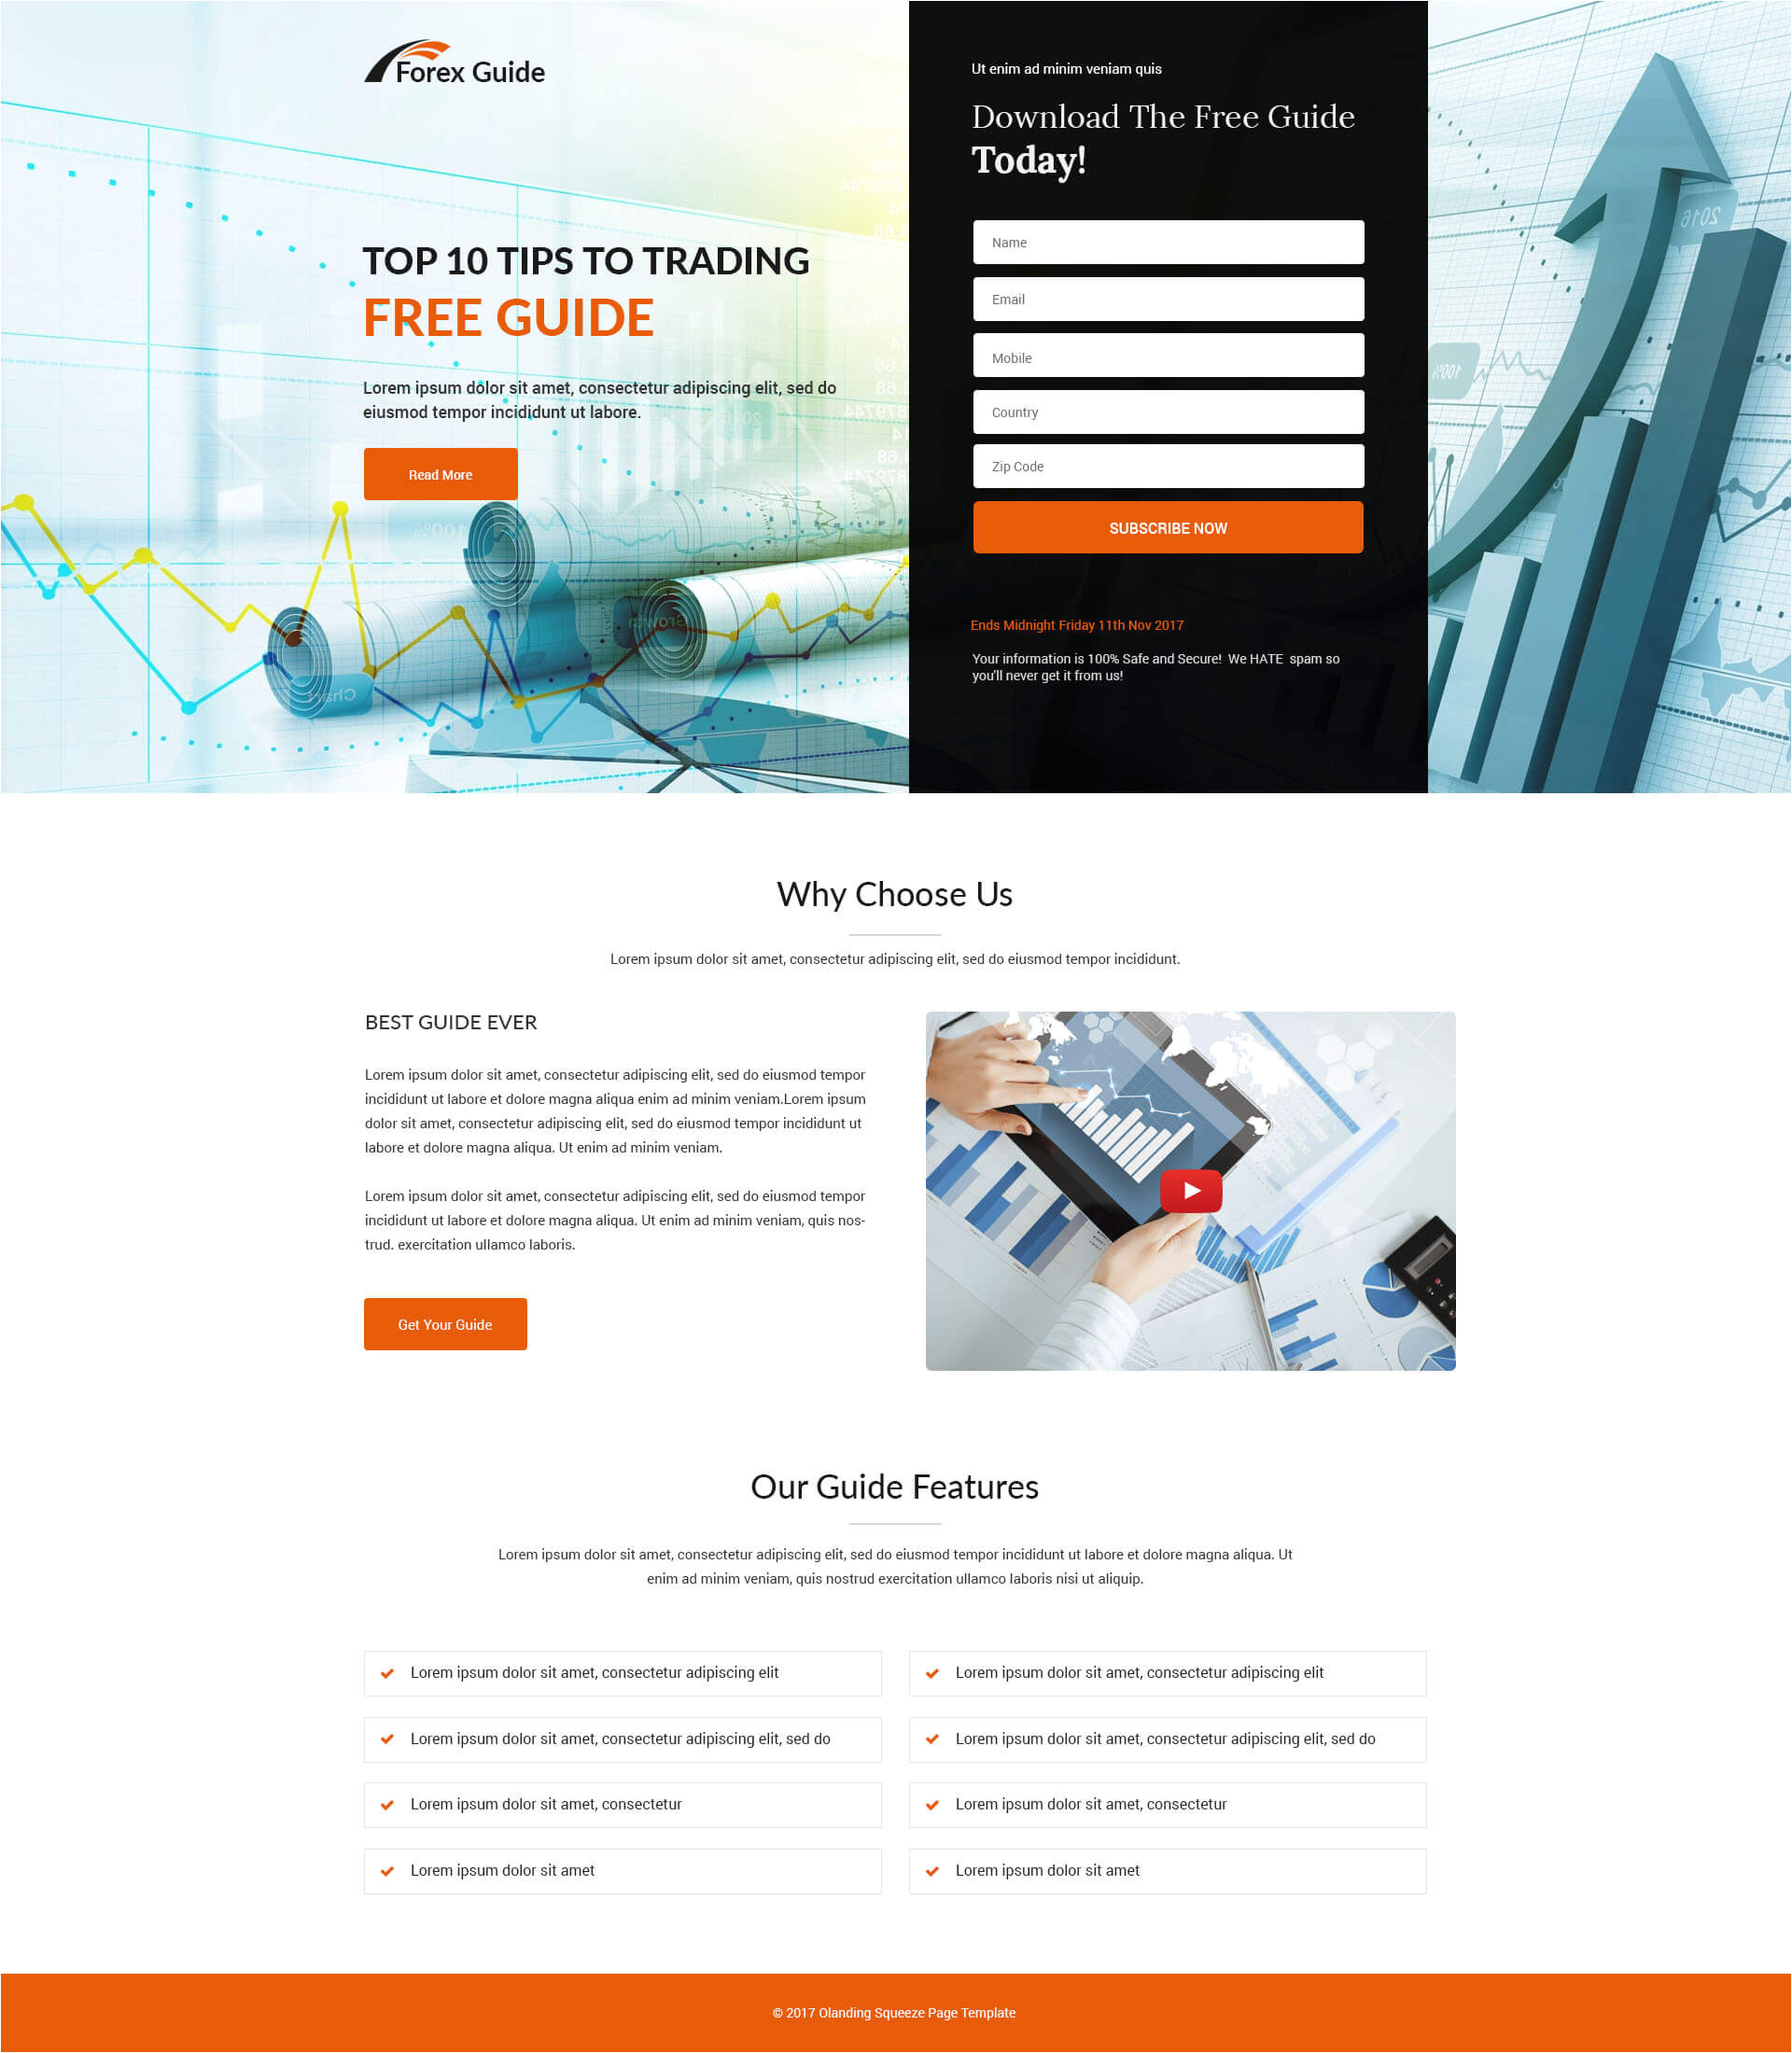 forex guide landing page design template to boost your trading business conversion